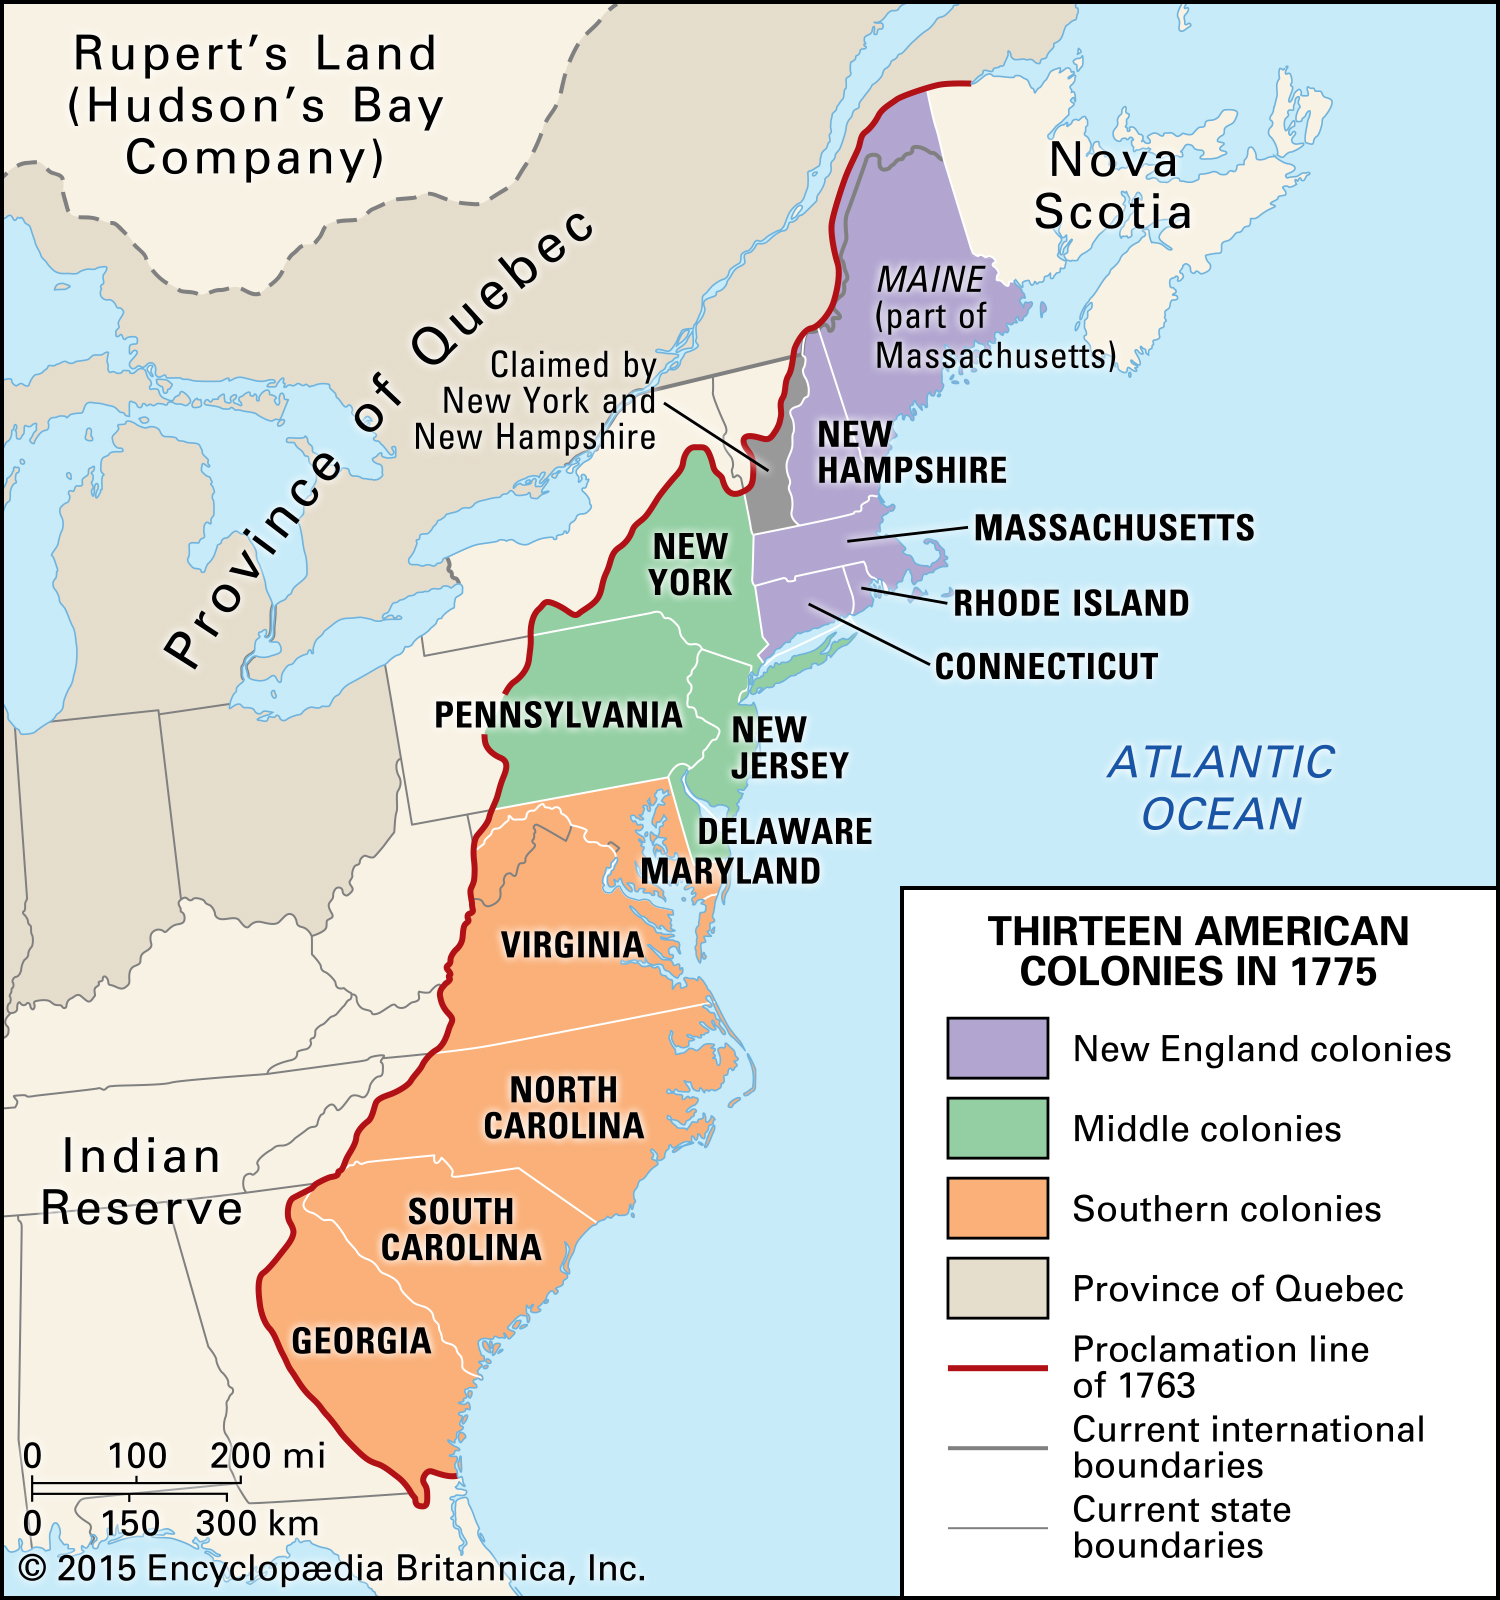 http://www.bigoo.nl/new-england-middle-and-southern-colonies-map.html